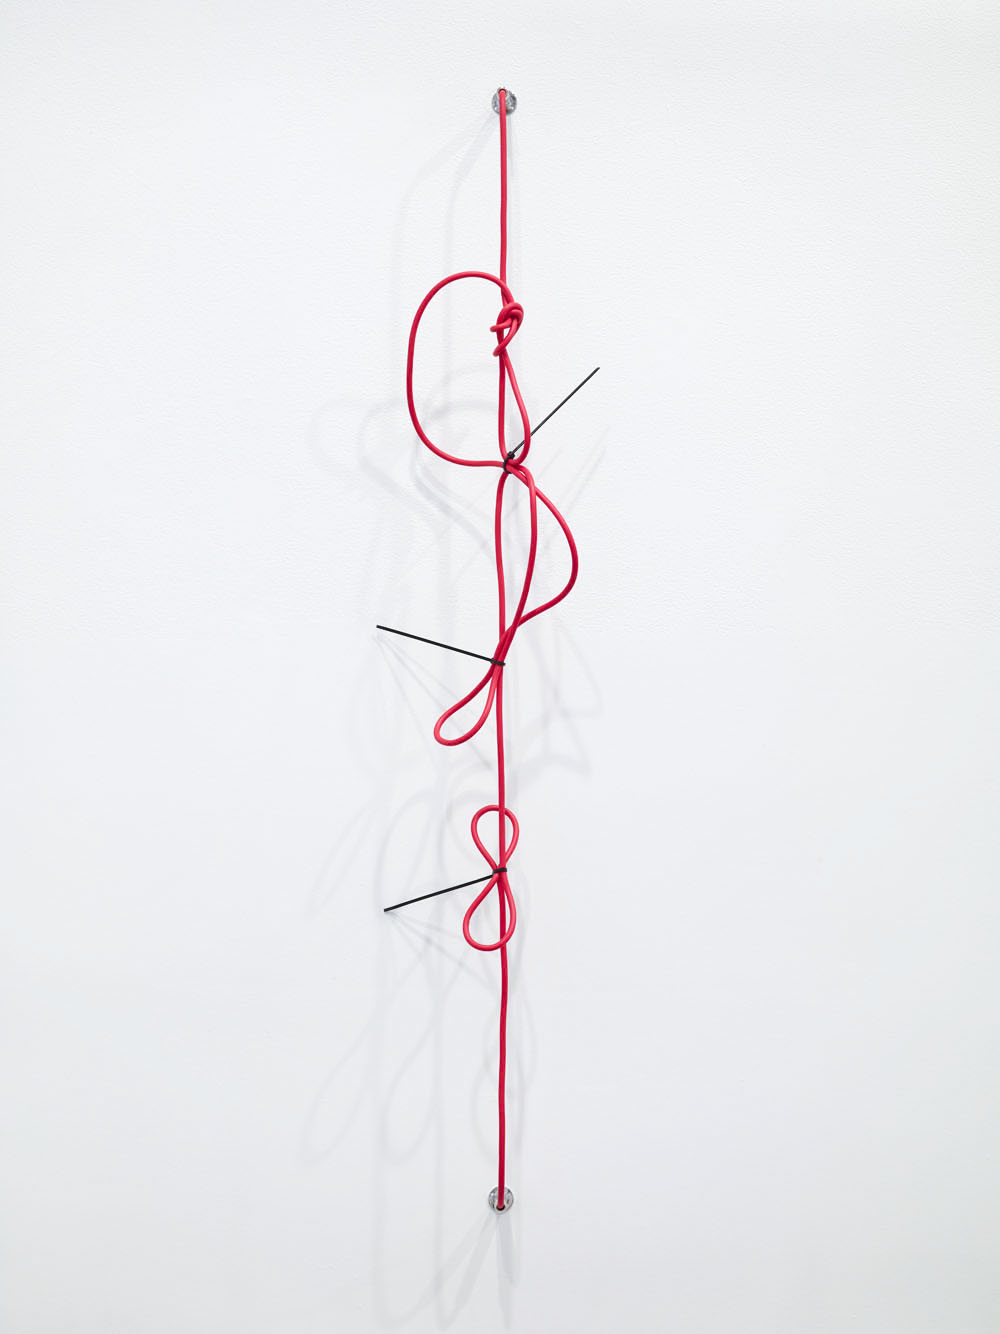 SHHH, The Red Series #2, Noise cancelling instrument cable, cable ties and endpin jacks 44 x 9 x 4.75 inches 2014